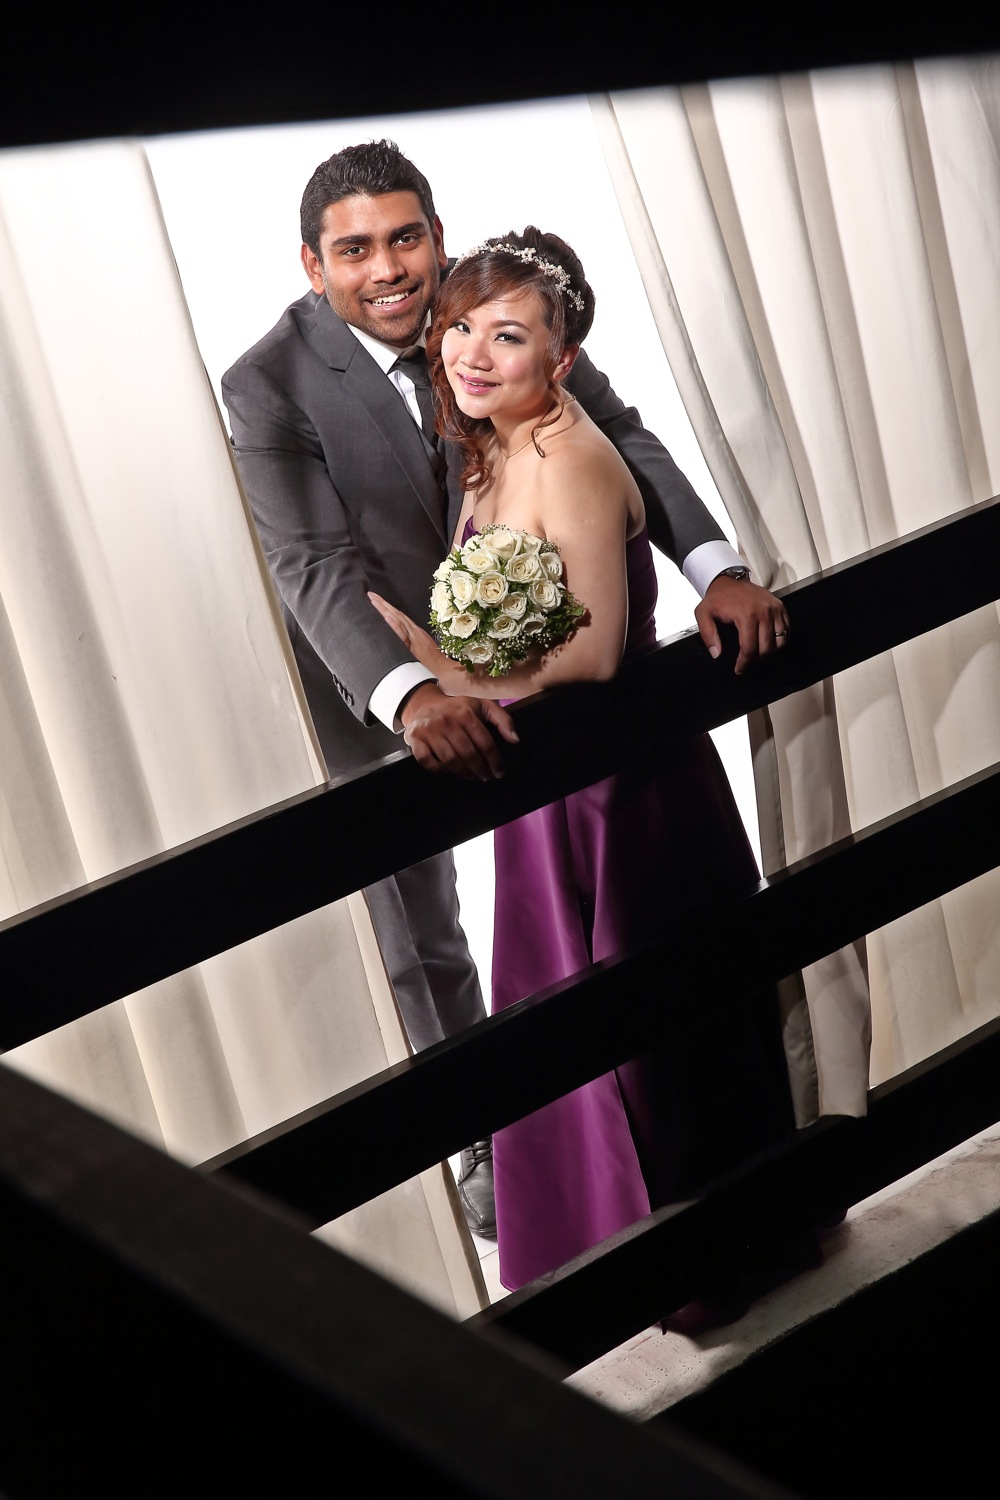 Studio wedding photography with Mudframes Pictures